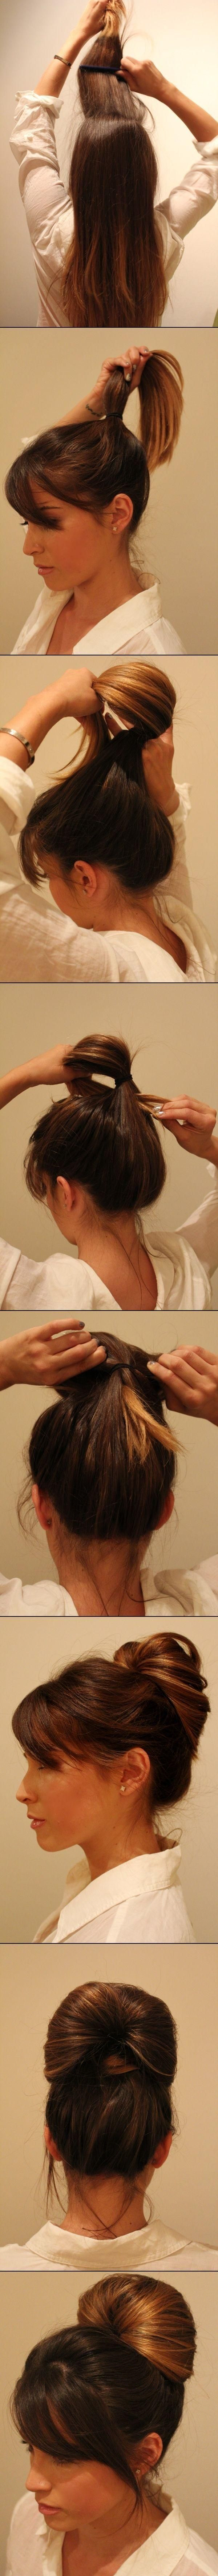 So much cuter than a ponytail. Love this! JUST TRIED IT! IT ACTUALLY WORKS! AND IT'S SUPER EASY! :)